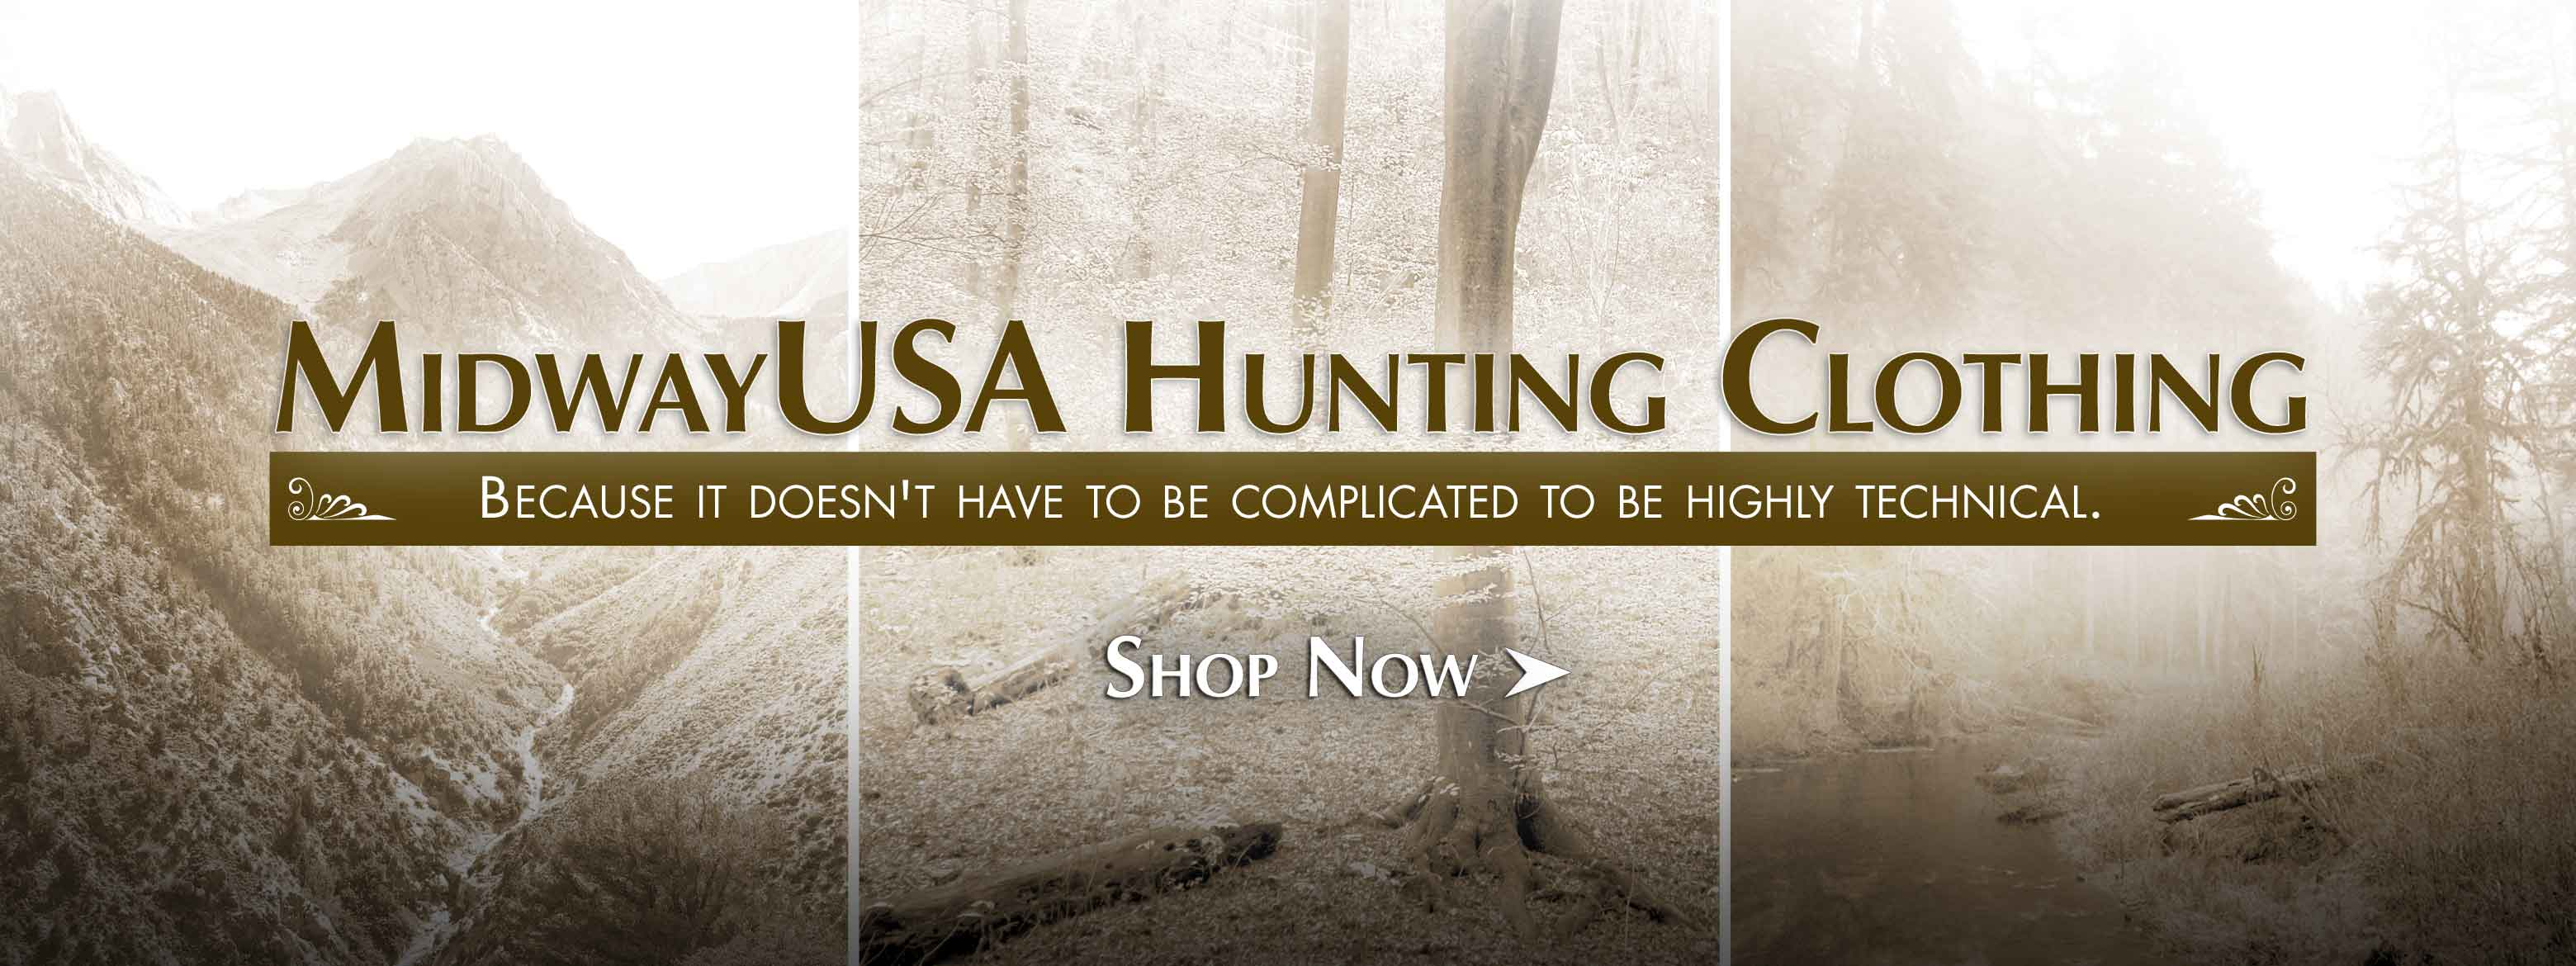 MidwayUSA Hunting Clothing